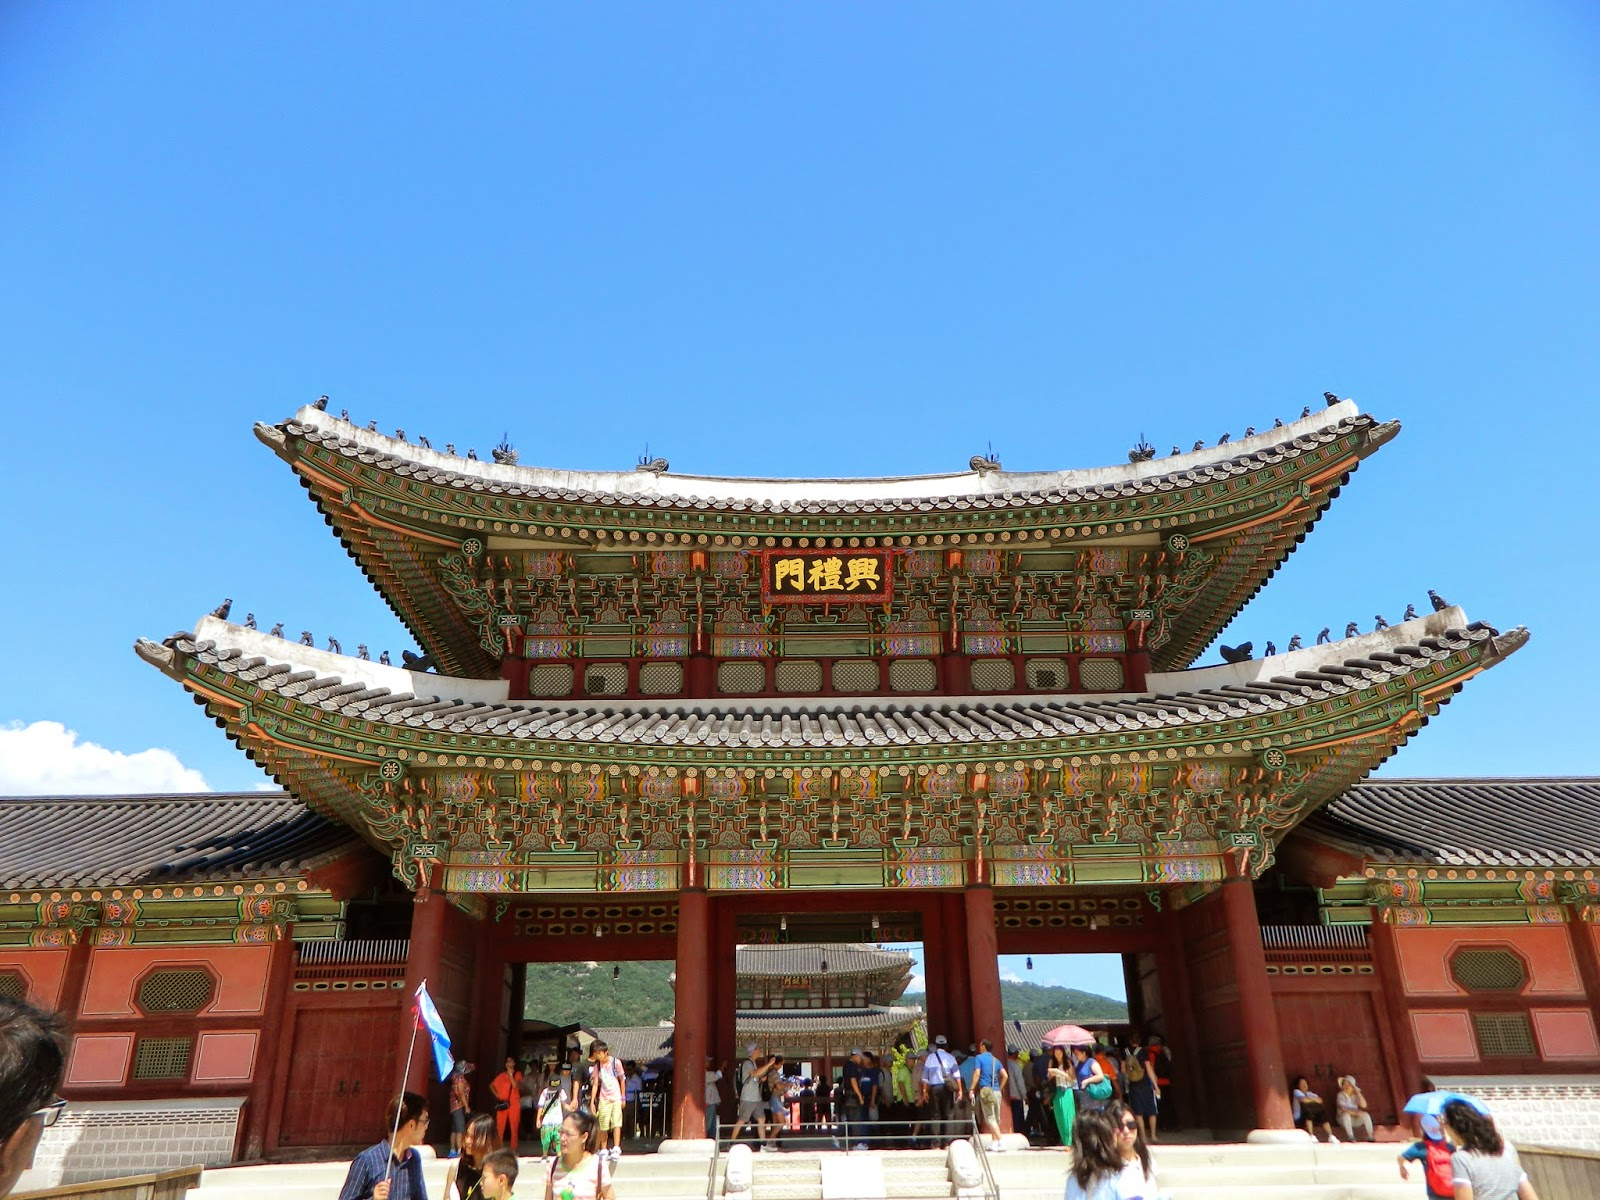 Entrance to the Gyeongbokgung